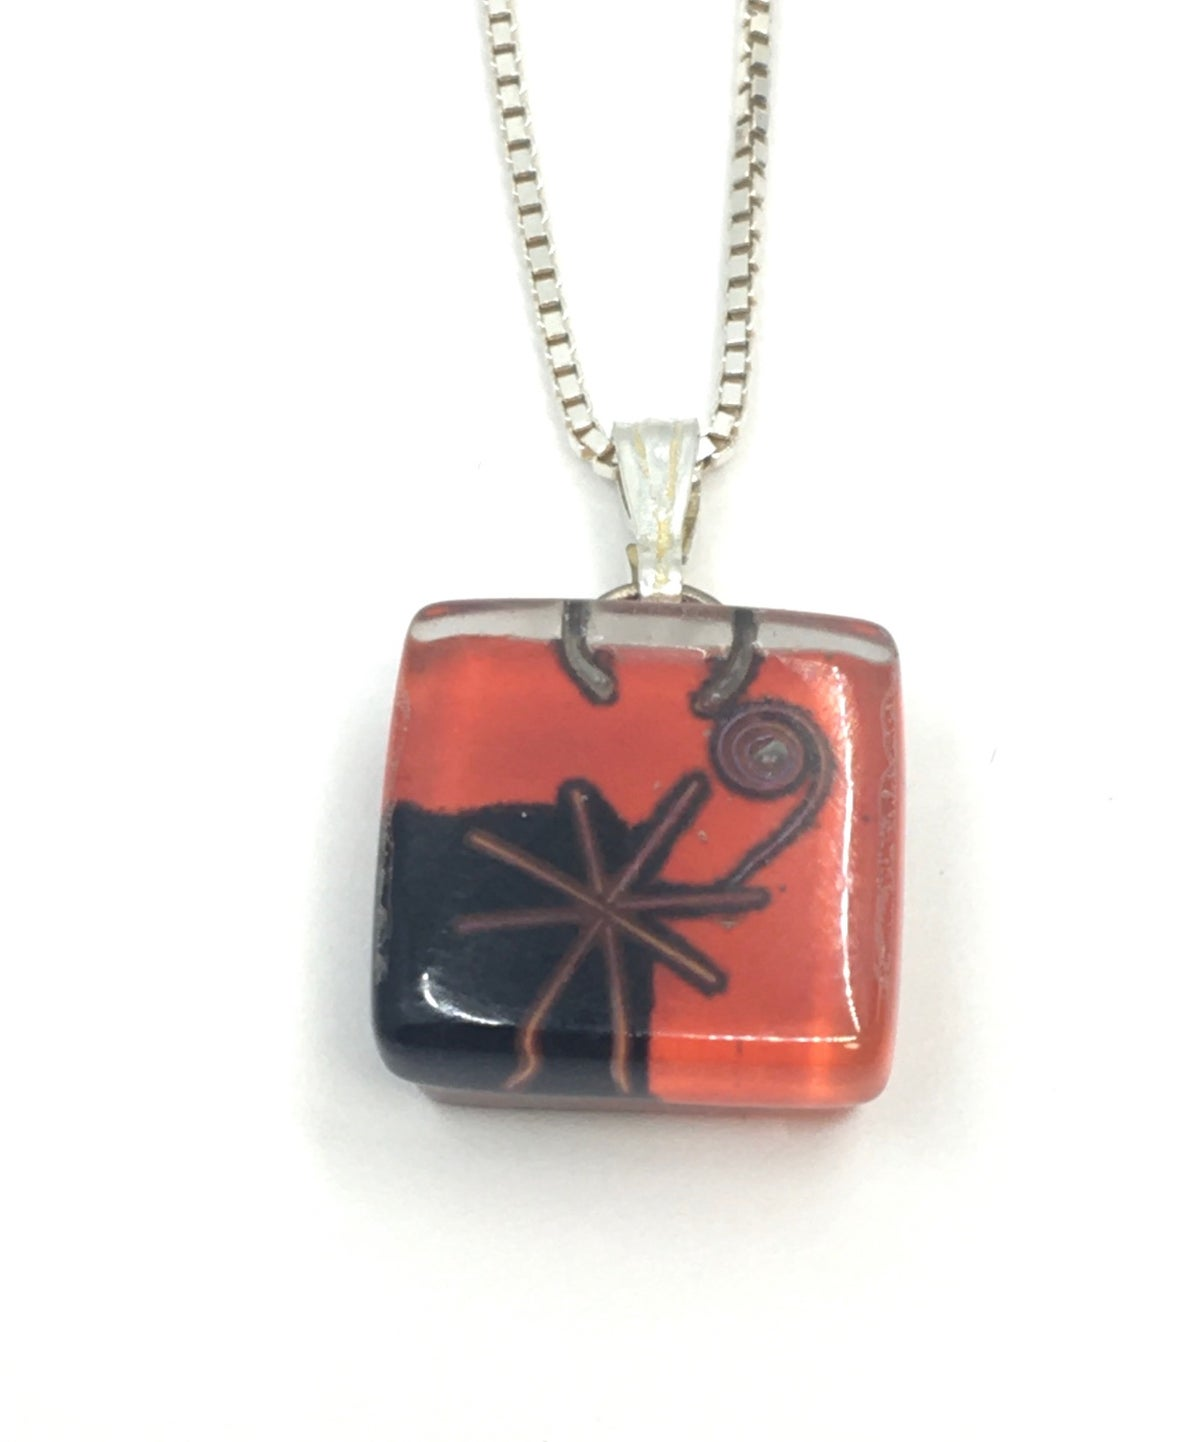 **25% Off** Small Red and Black Square Necklace by Momo Glassworks